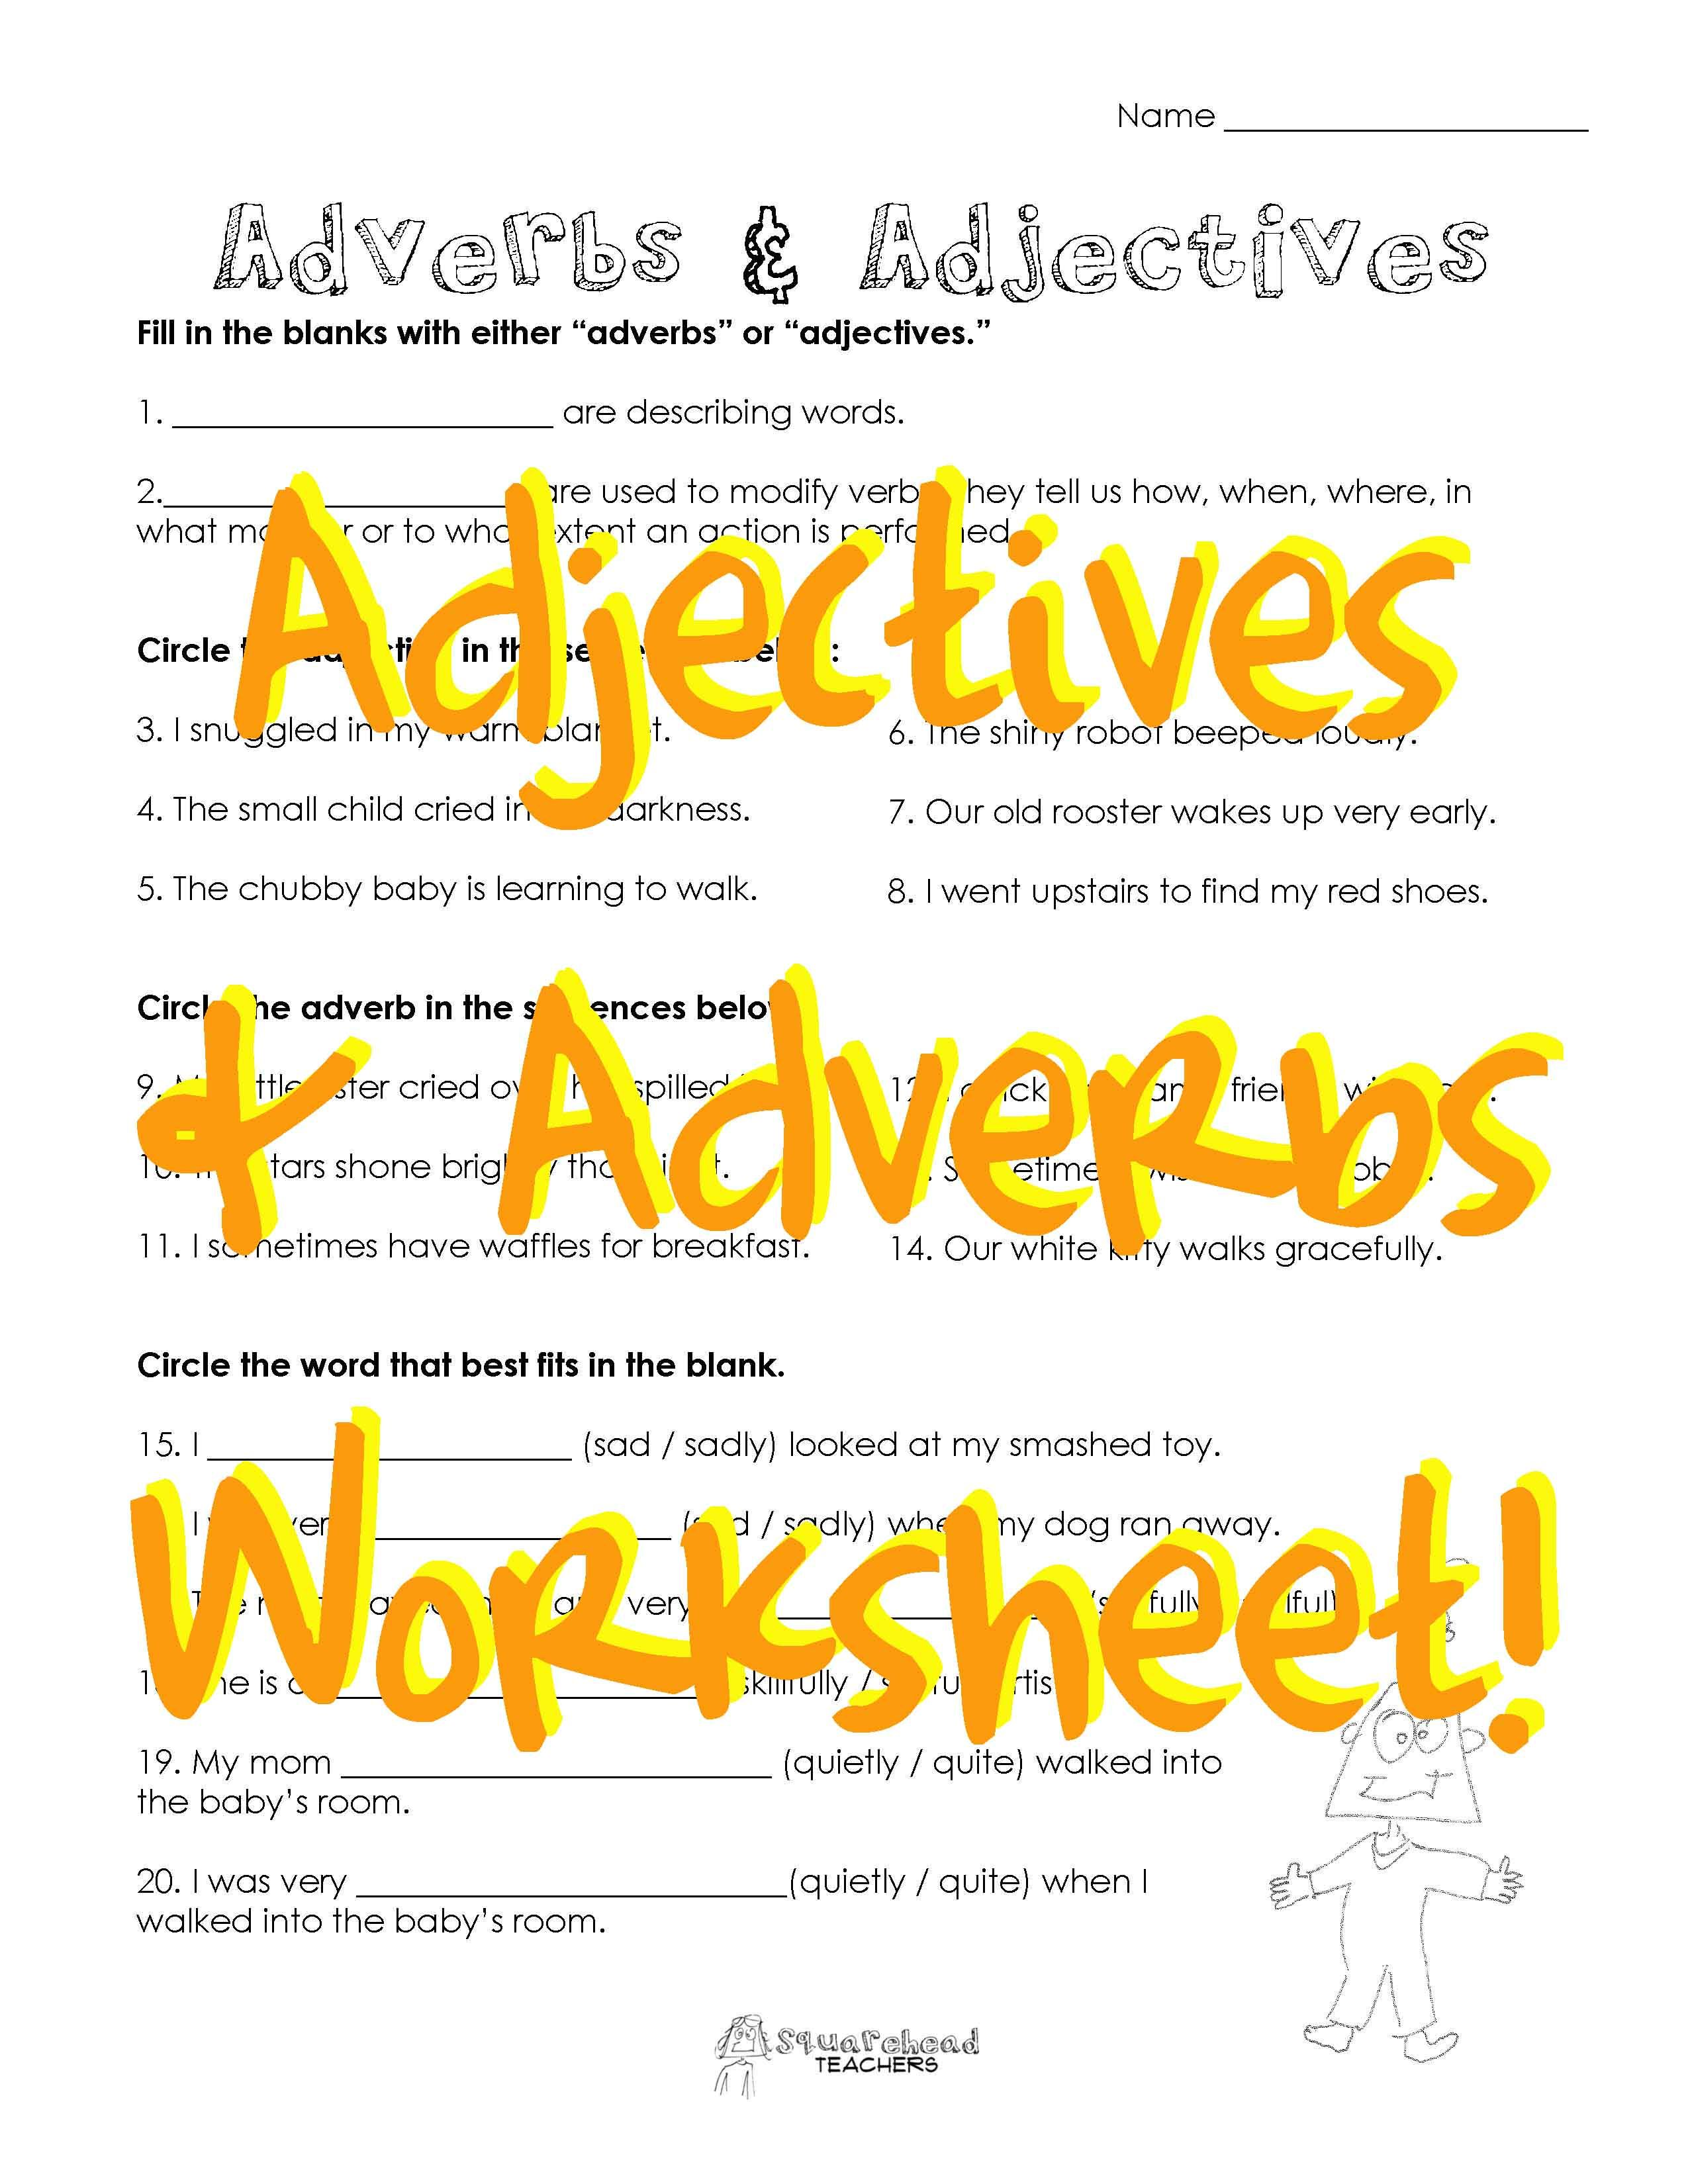 Adjectives Adverbs 2 Free Worksheet